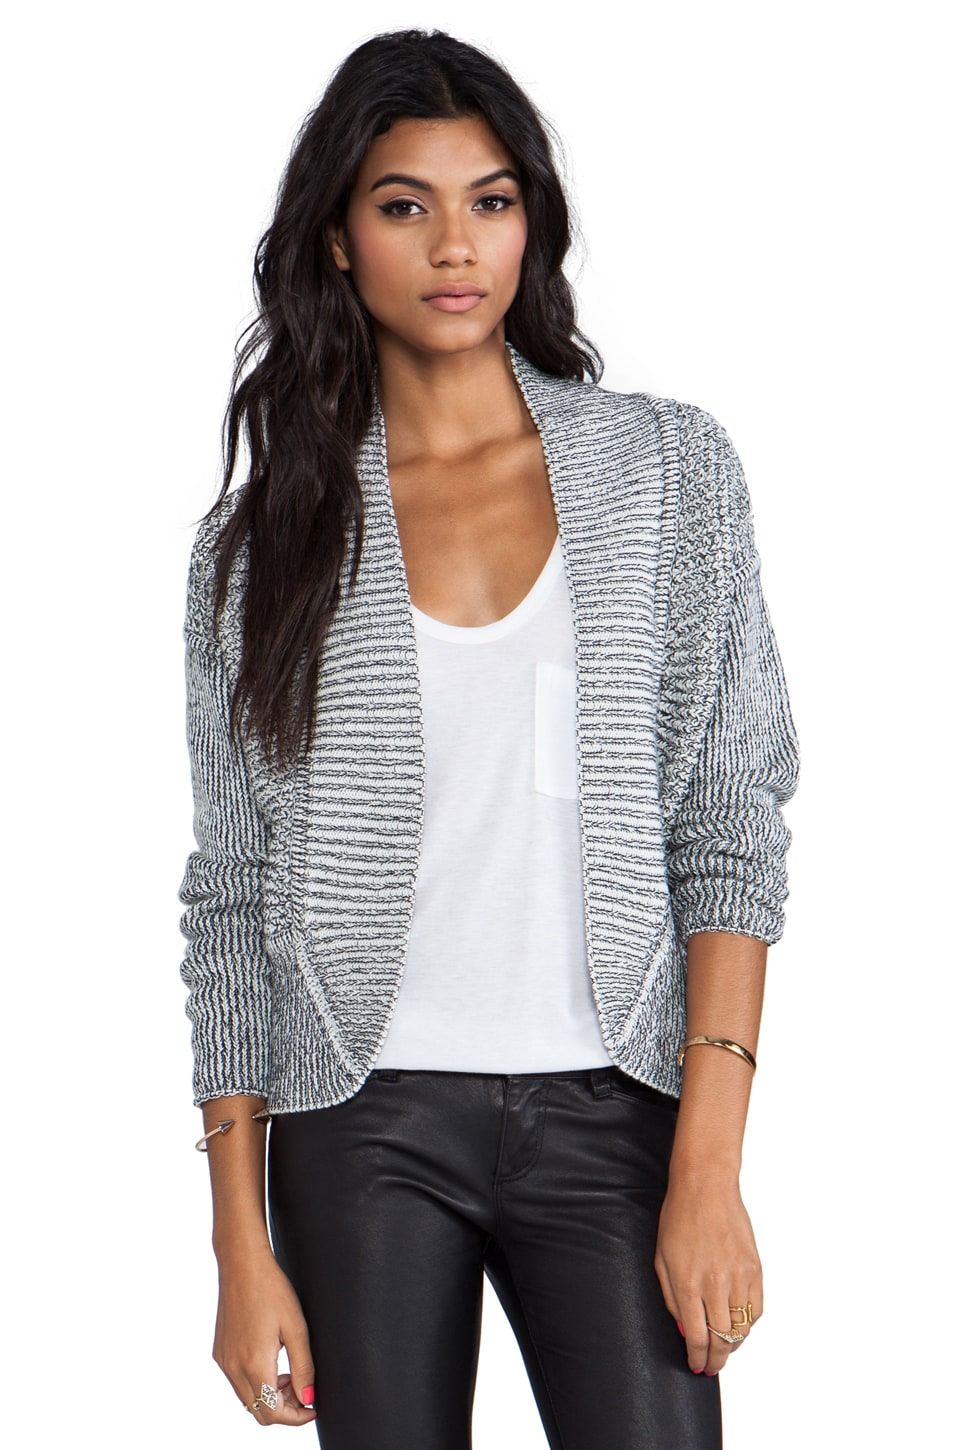 DUFFY Aerial Perspective Cardigan in Cloud/Black